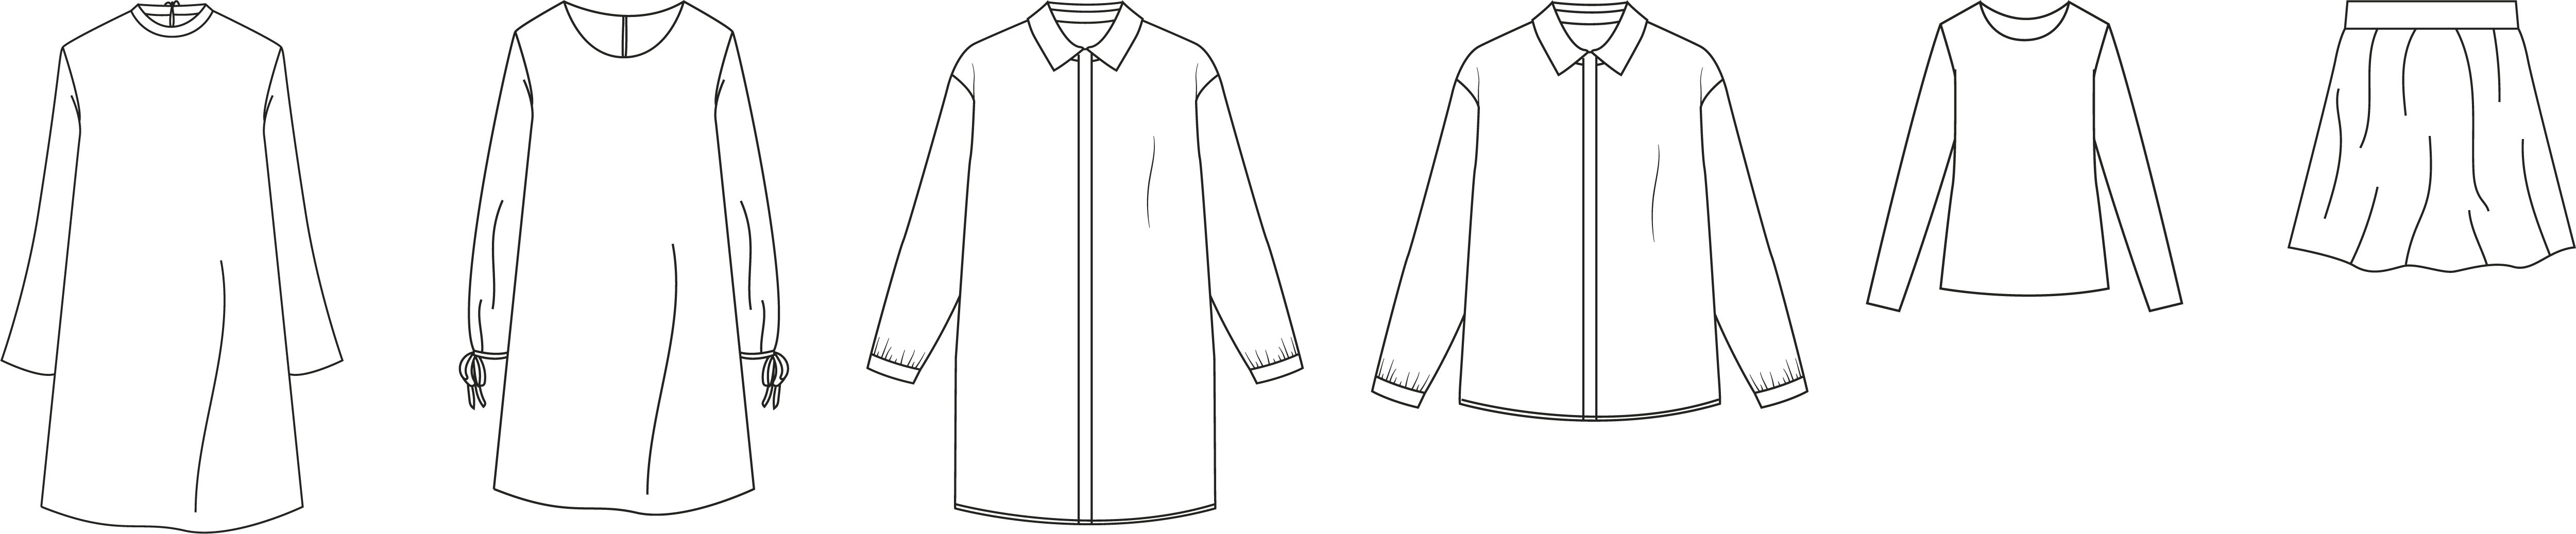 customize clothing and made to order garments